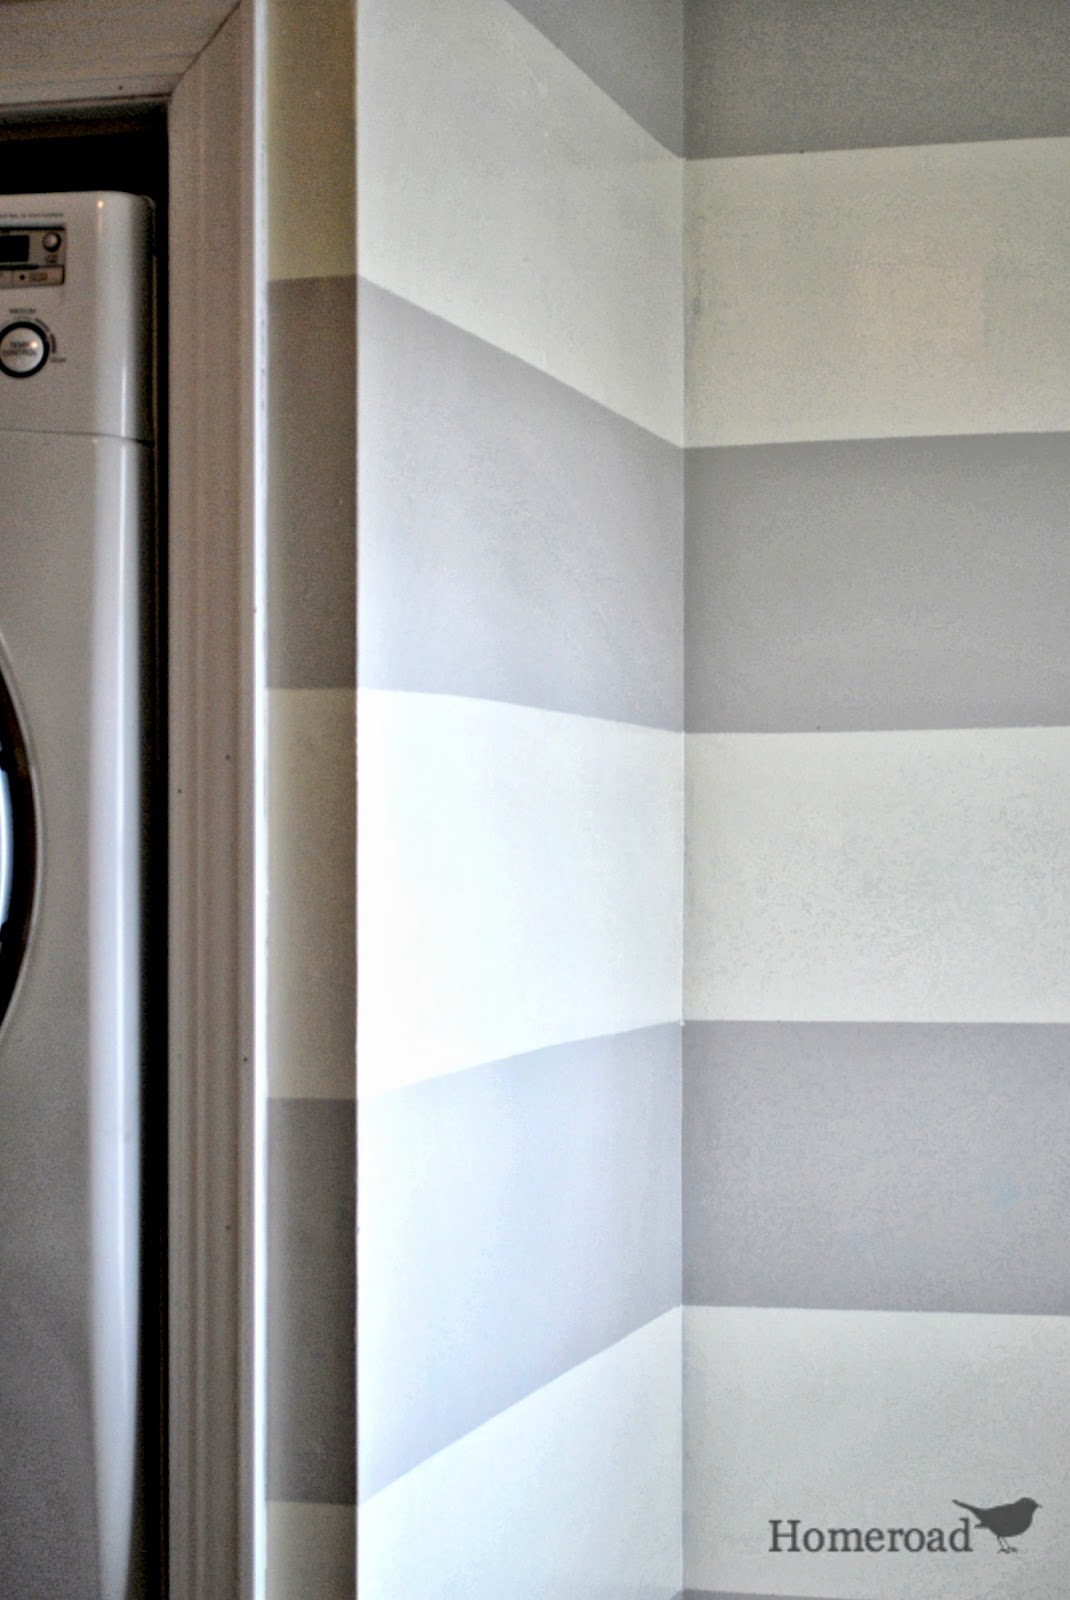 Striped Walls in the Bathroom | Homeroad